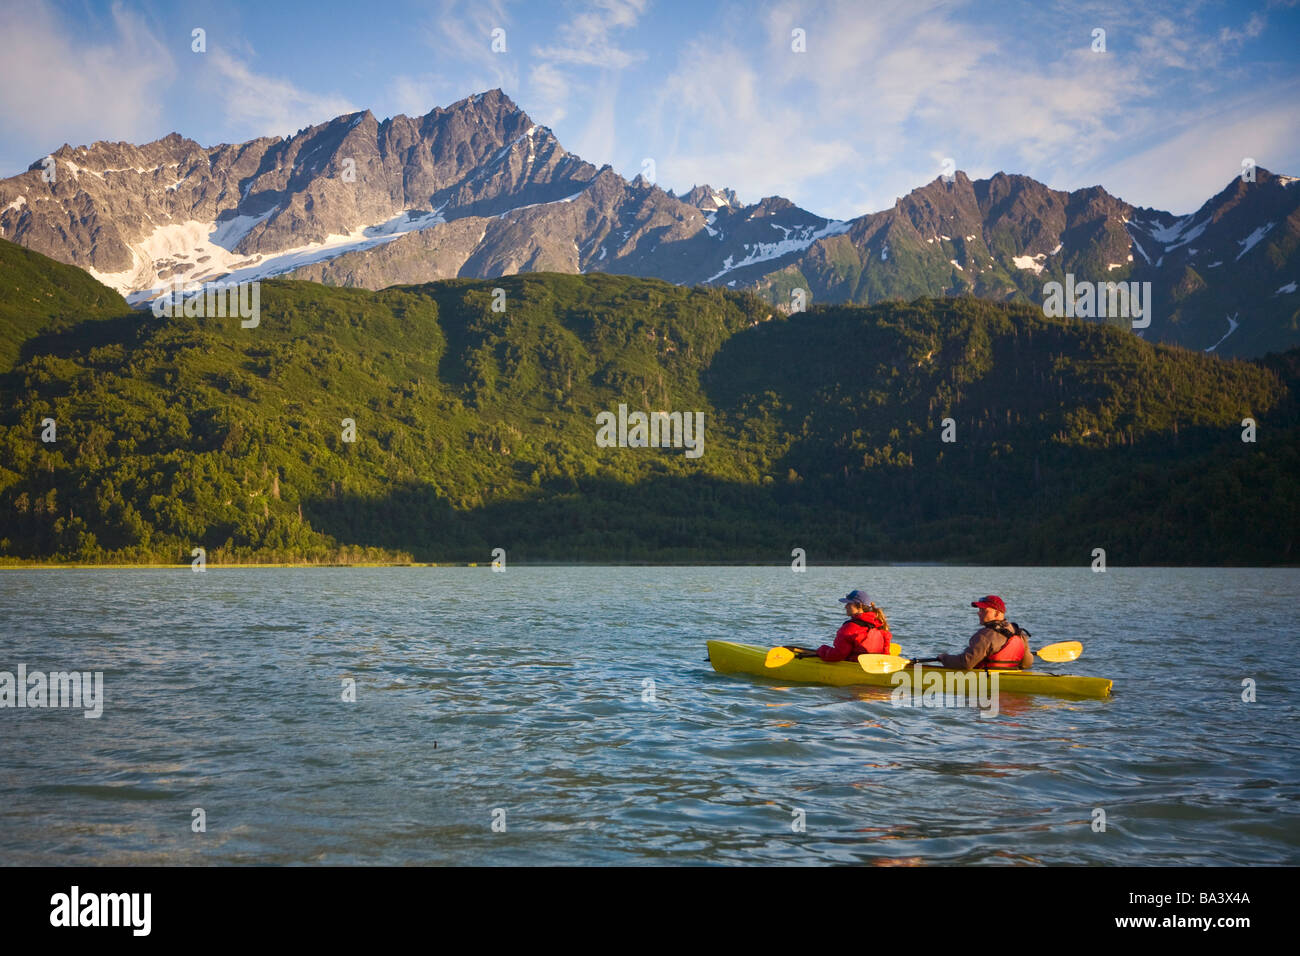 Kayakers on Big River Lakes with Chigmit Mountains in the background during Summer in Southcentral Alaska - Stock Image